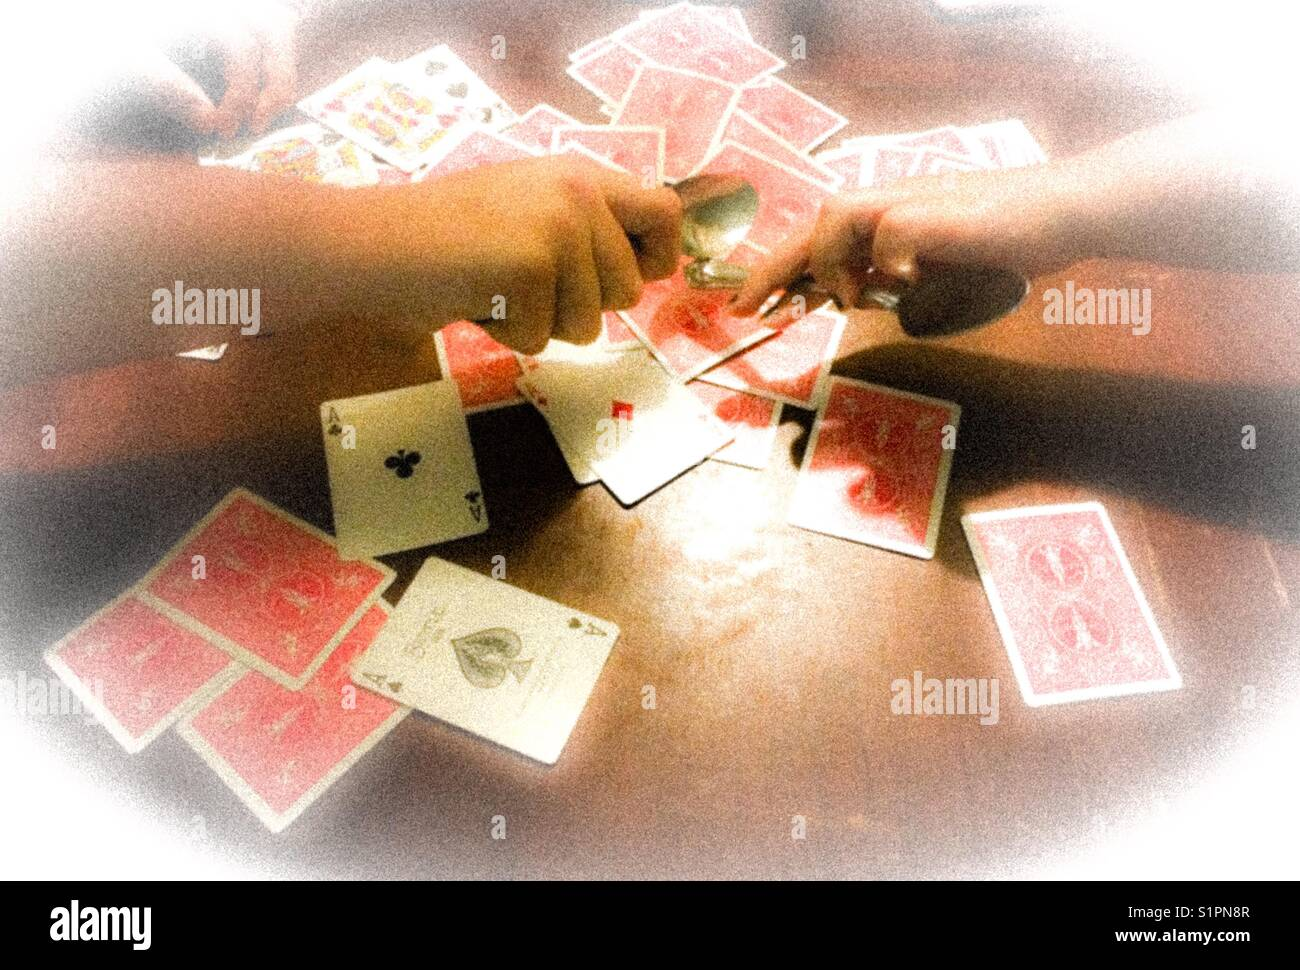 Kids Playing Spoons Card Game Stock Photo 310900935 Alamy